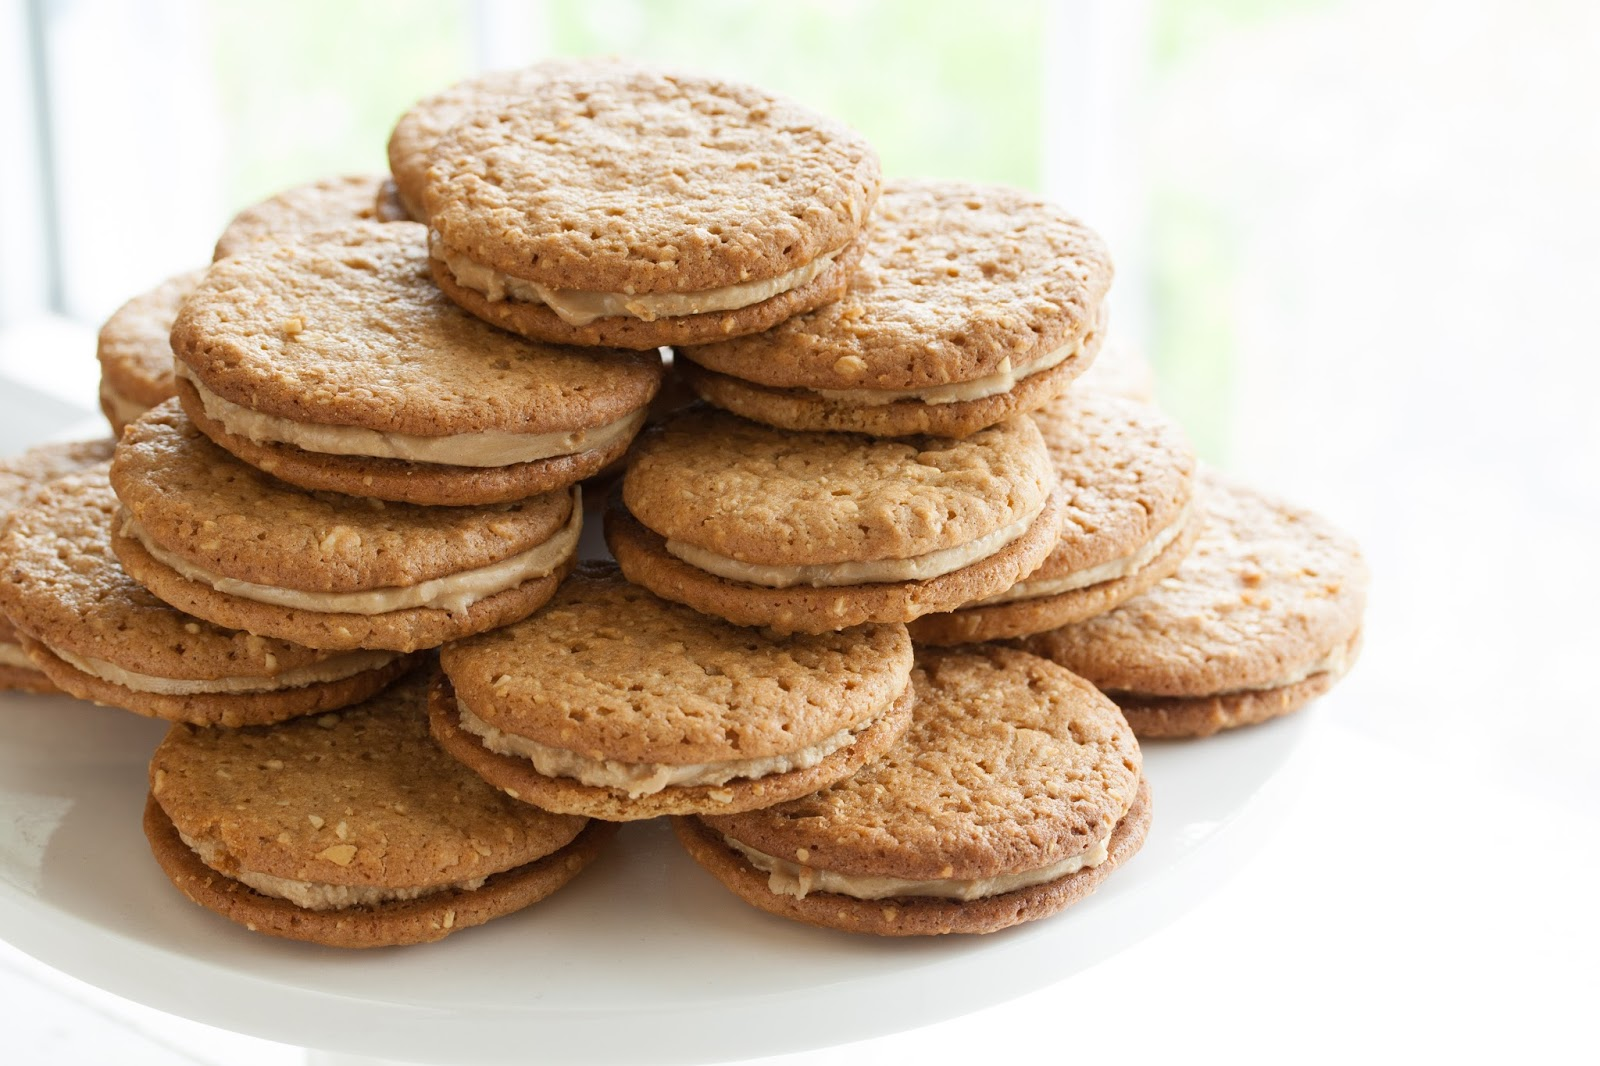 Peanut Butter Sandwich Cookies - Saving Room for Dessert